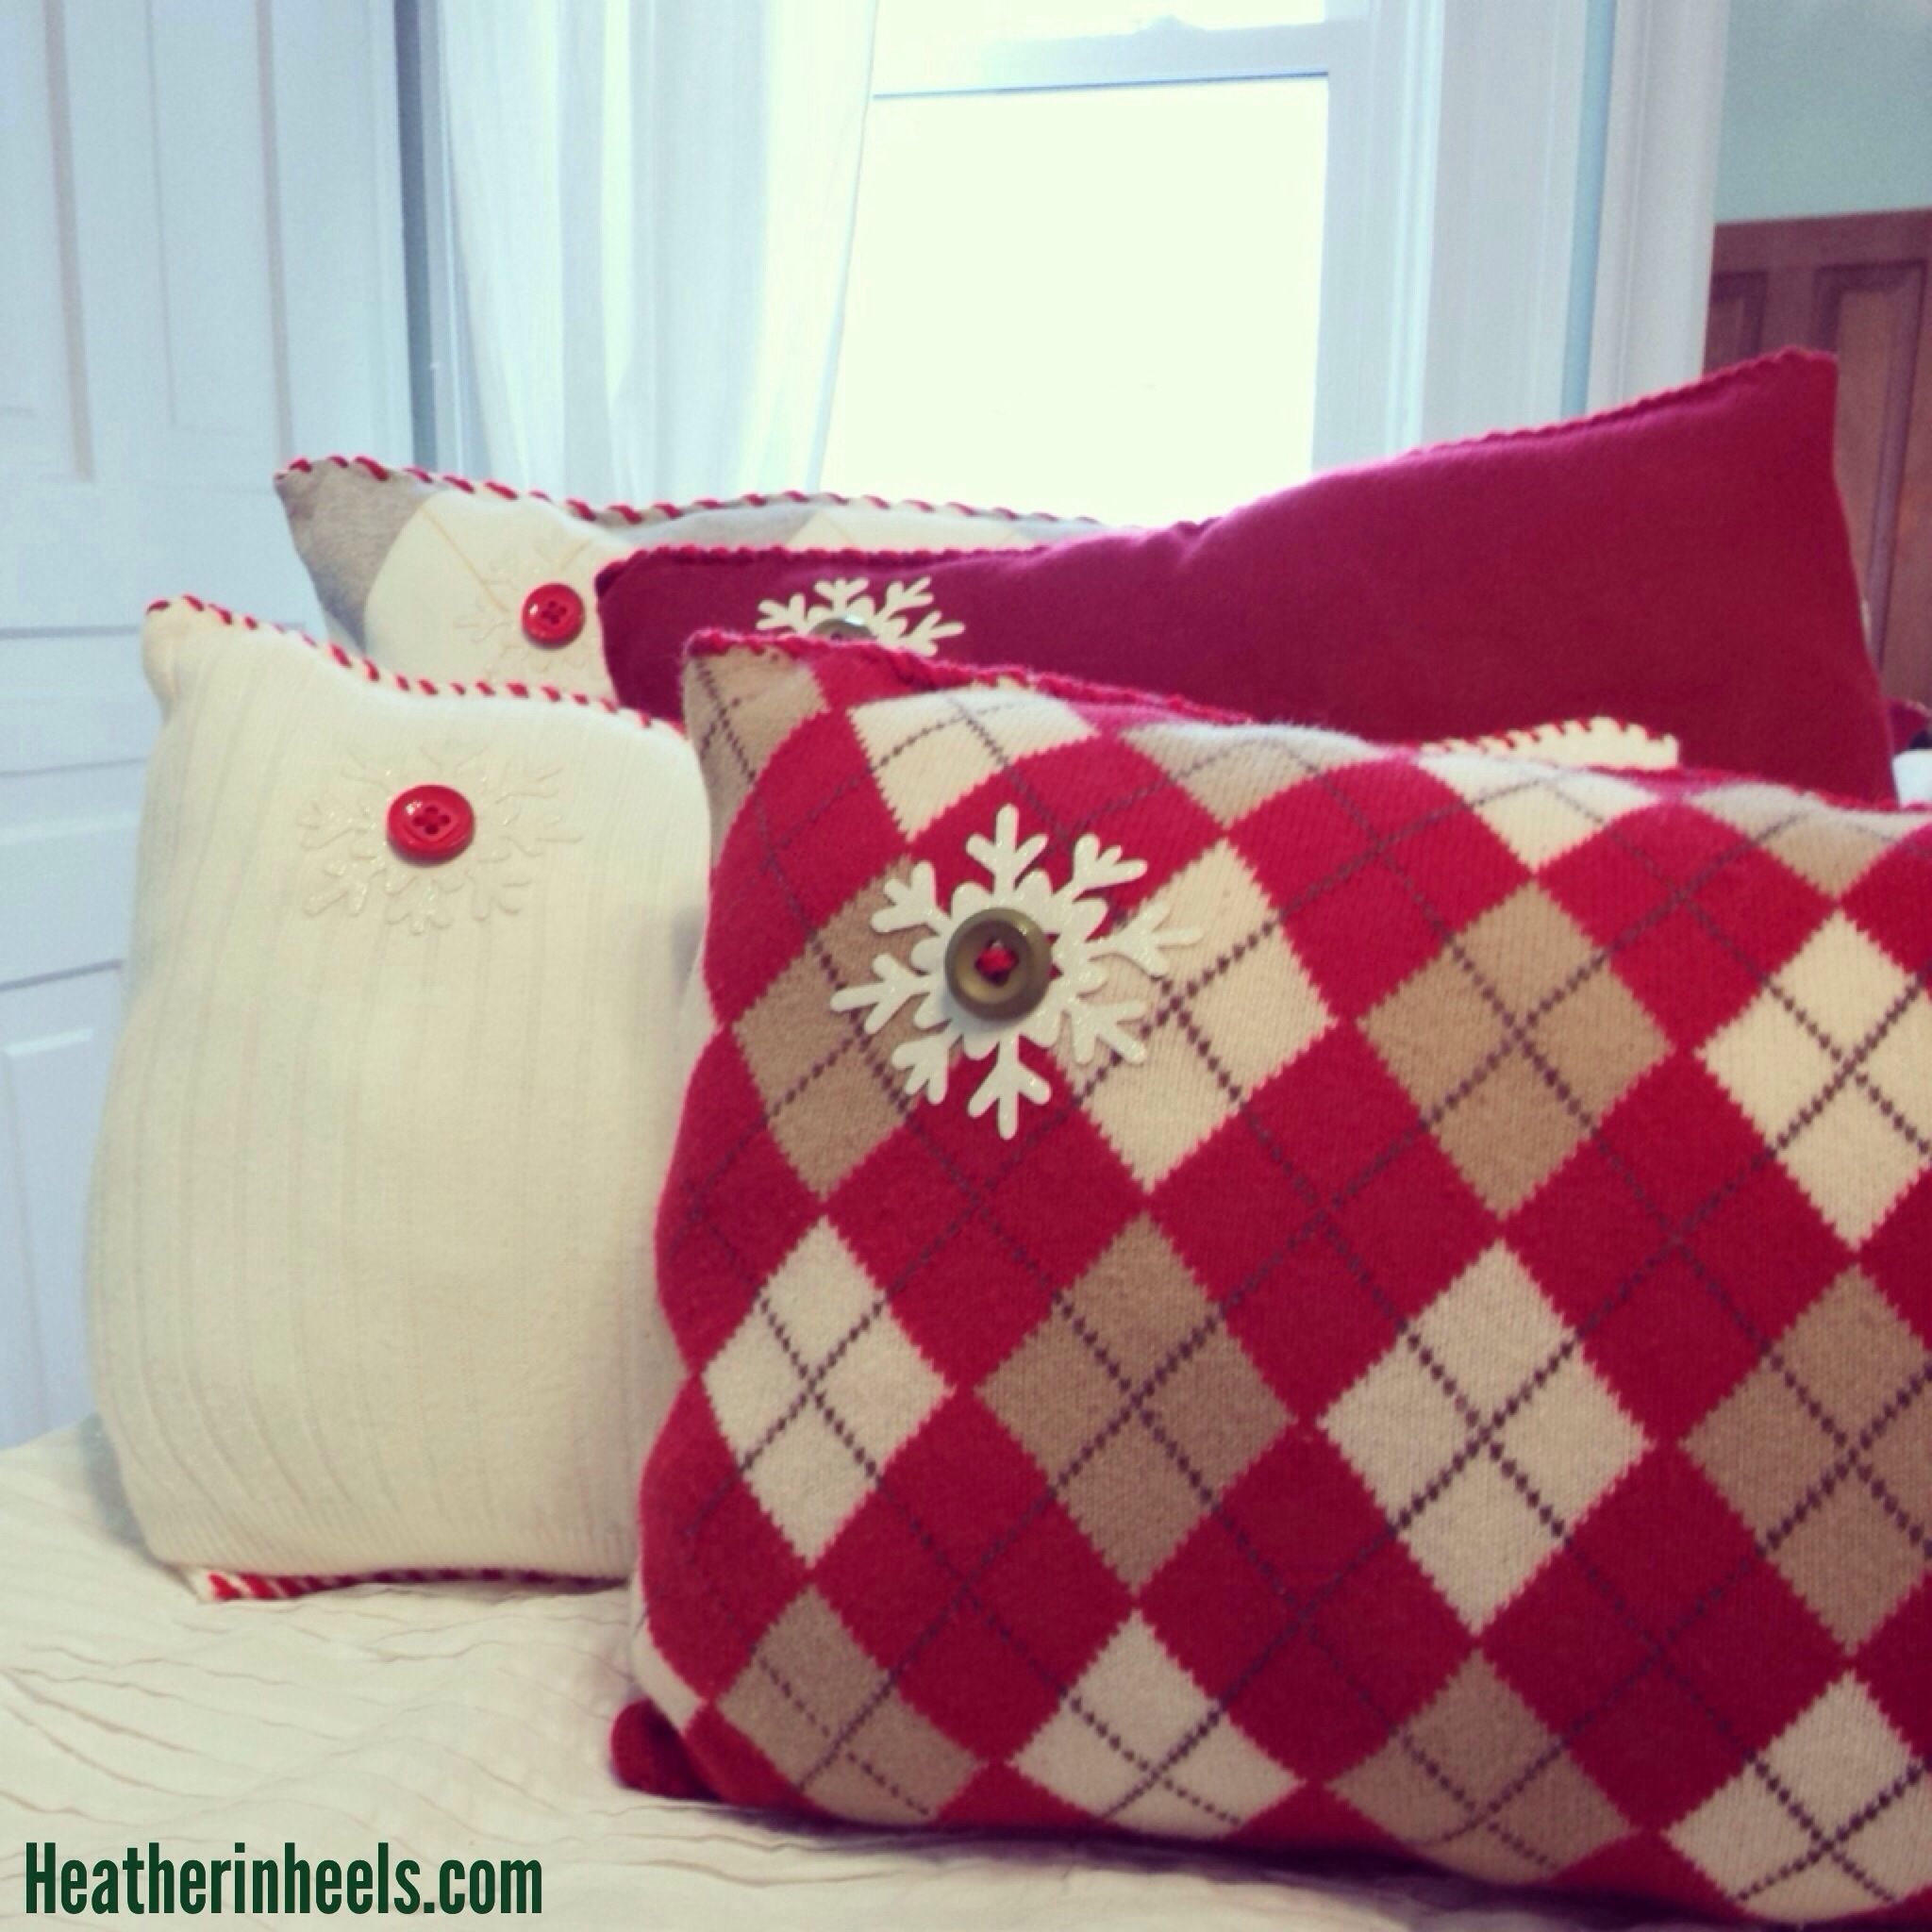 Easy Holiday Pillows Up Cycling Old Sweaters Heather In Heels Pillows Holiday Pillows Christmas Pillows